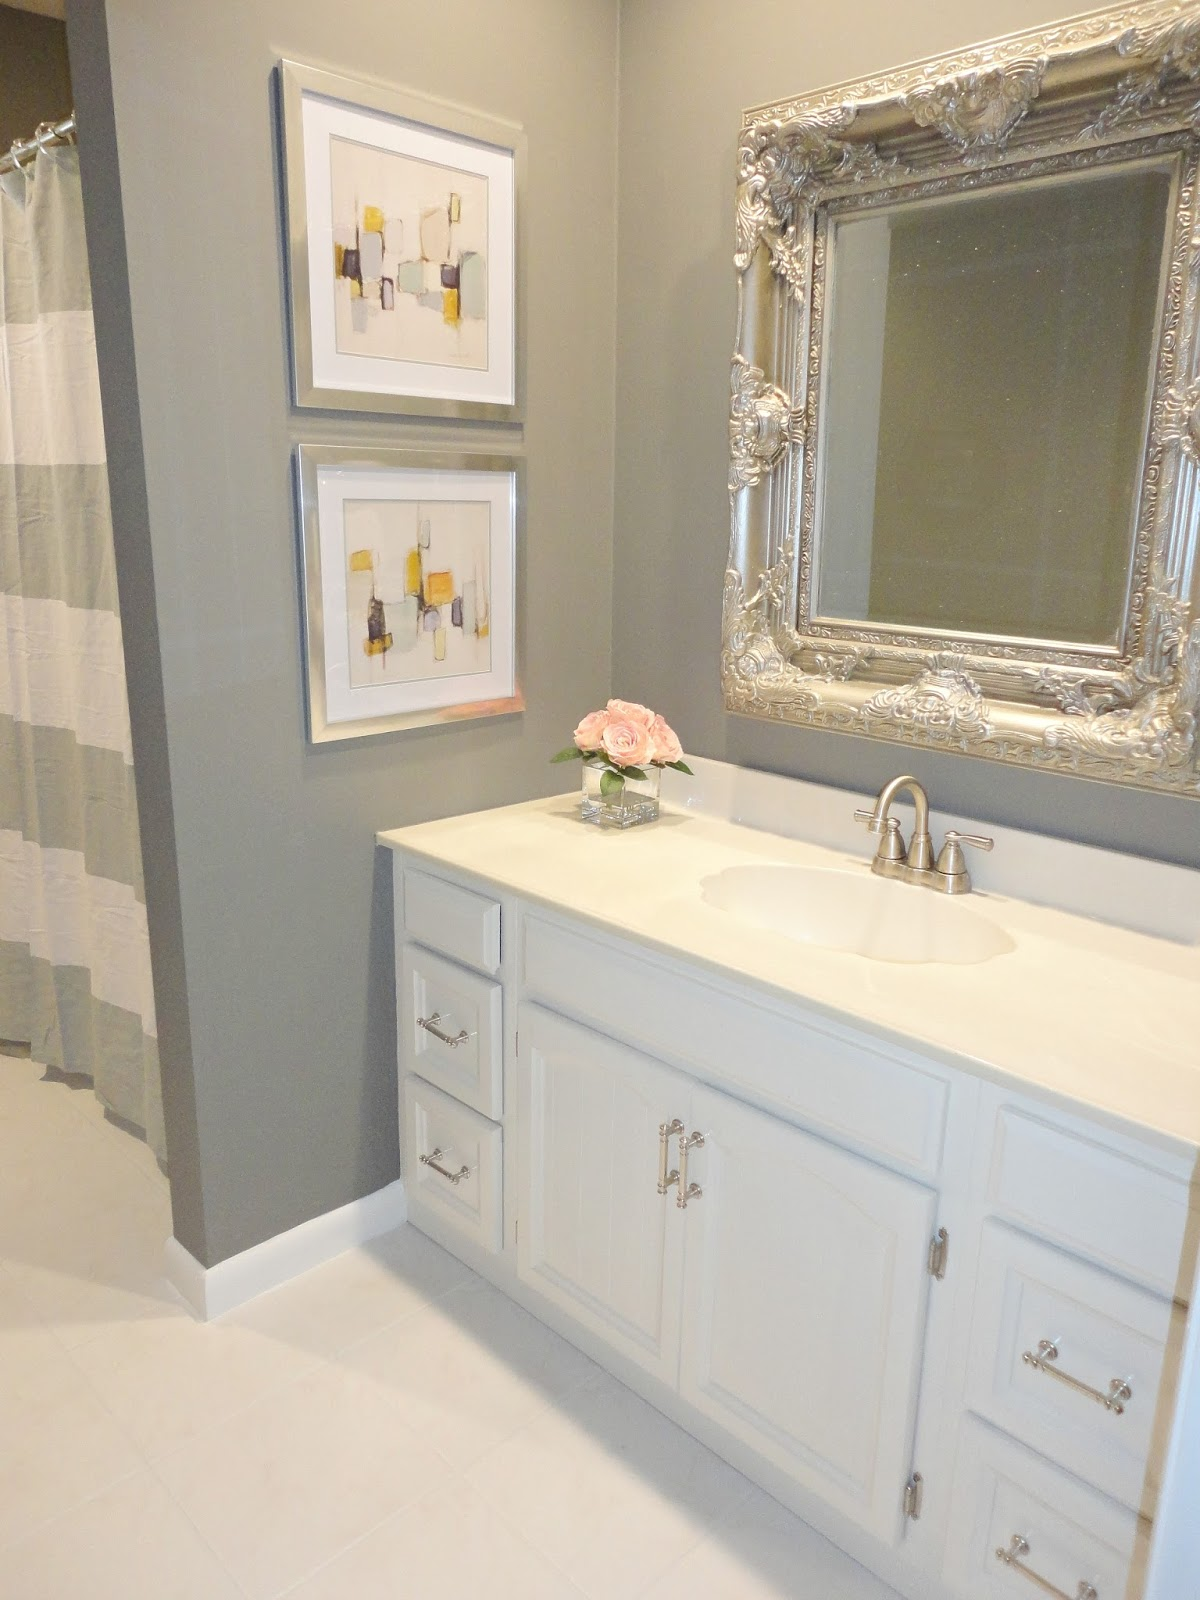 Budget Bathroom Remodel Gorgeous Bathroom Remodel On A Budget  Enom.warb.co Inspiration